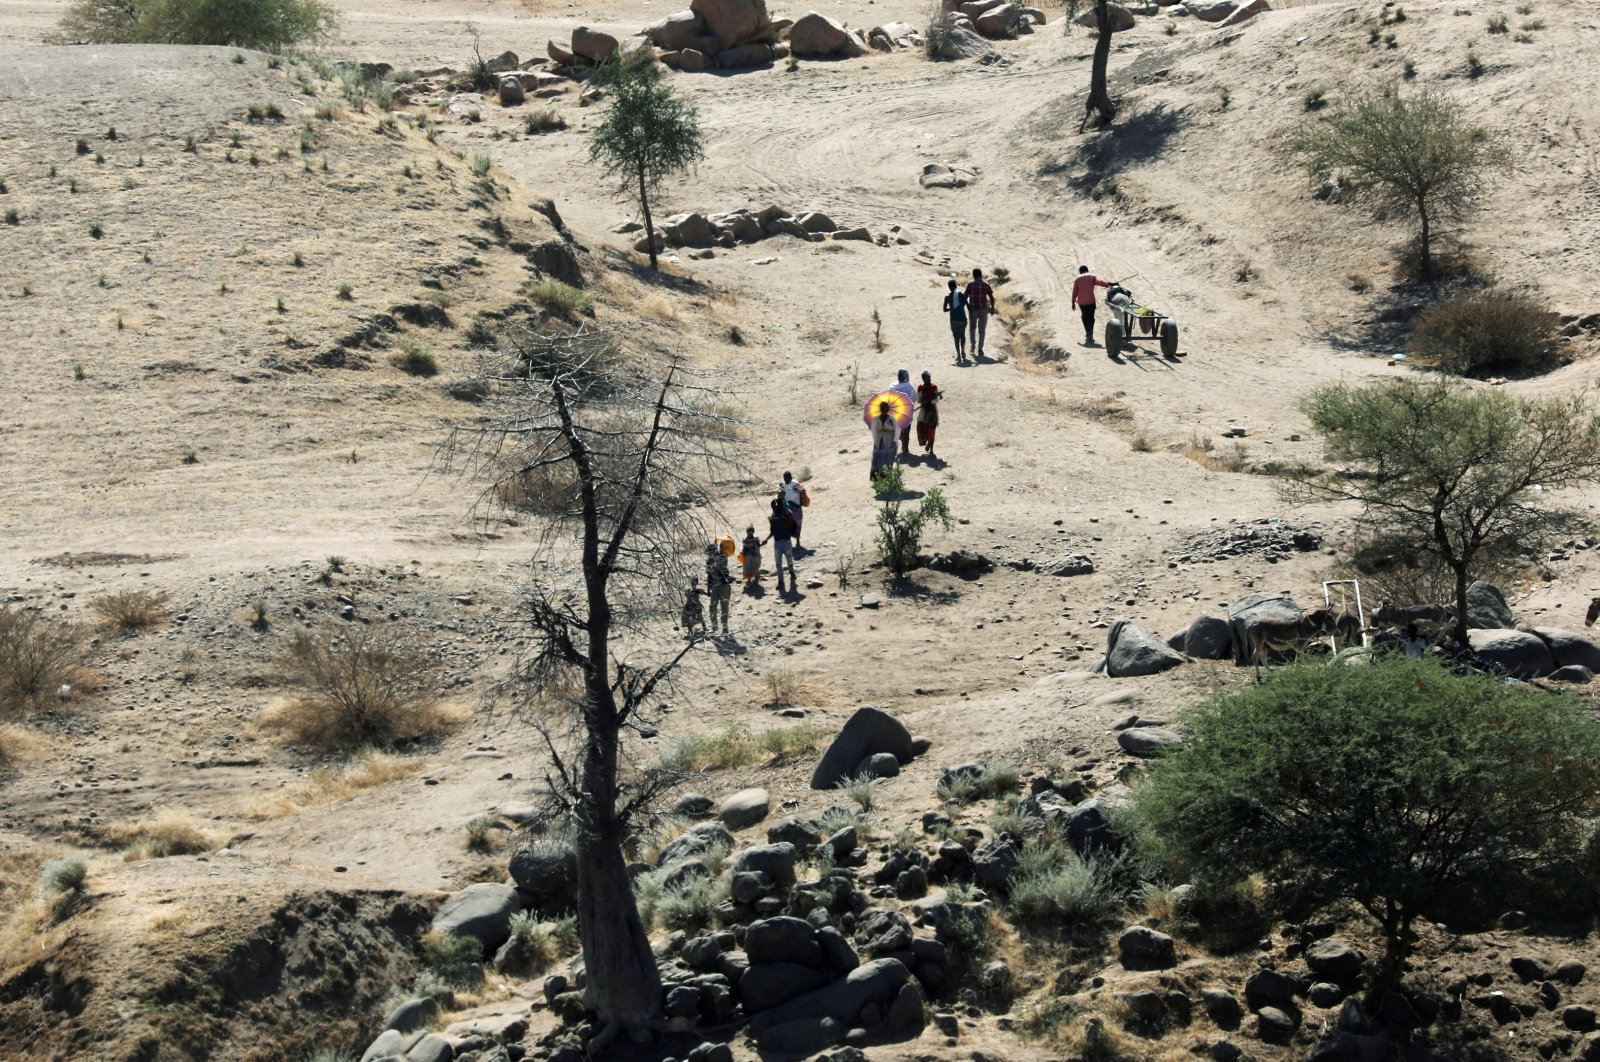 Ethiopians fleeing from the Tigray region walk toward a river to cross from Ethiopia to Sudan, near the Hamdeyat refugee transit camp, which houses refugees fleeing the fighting in the Tigray region, on the border in Sudan, December 1, 2020. (Reuters Photo)